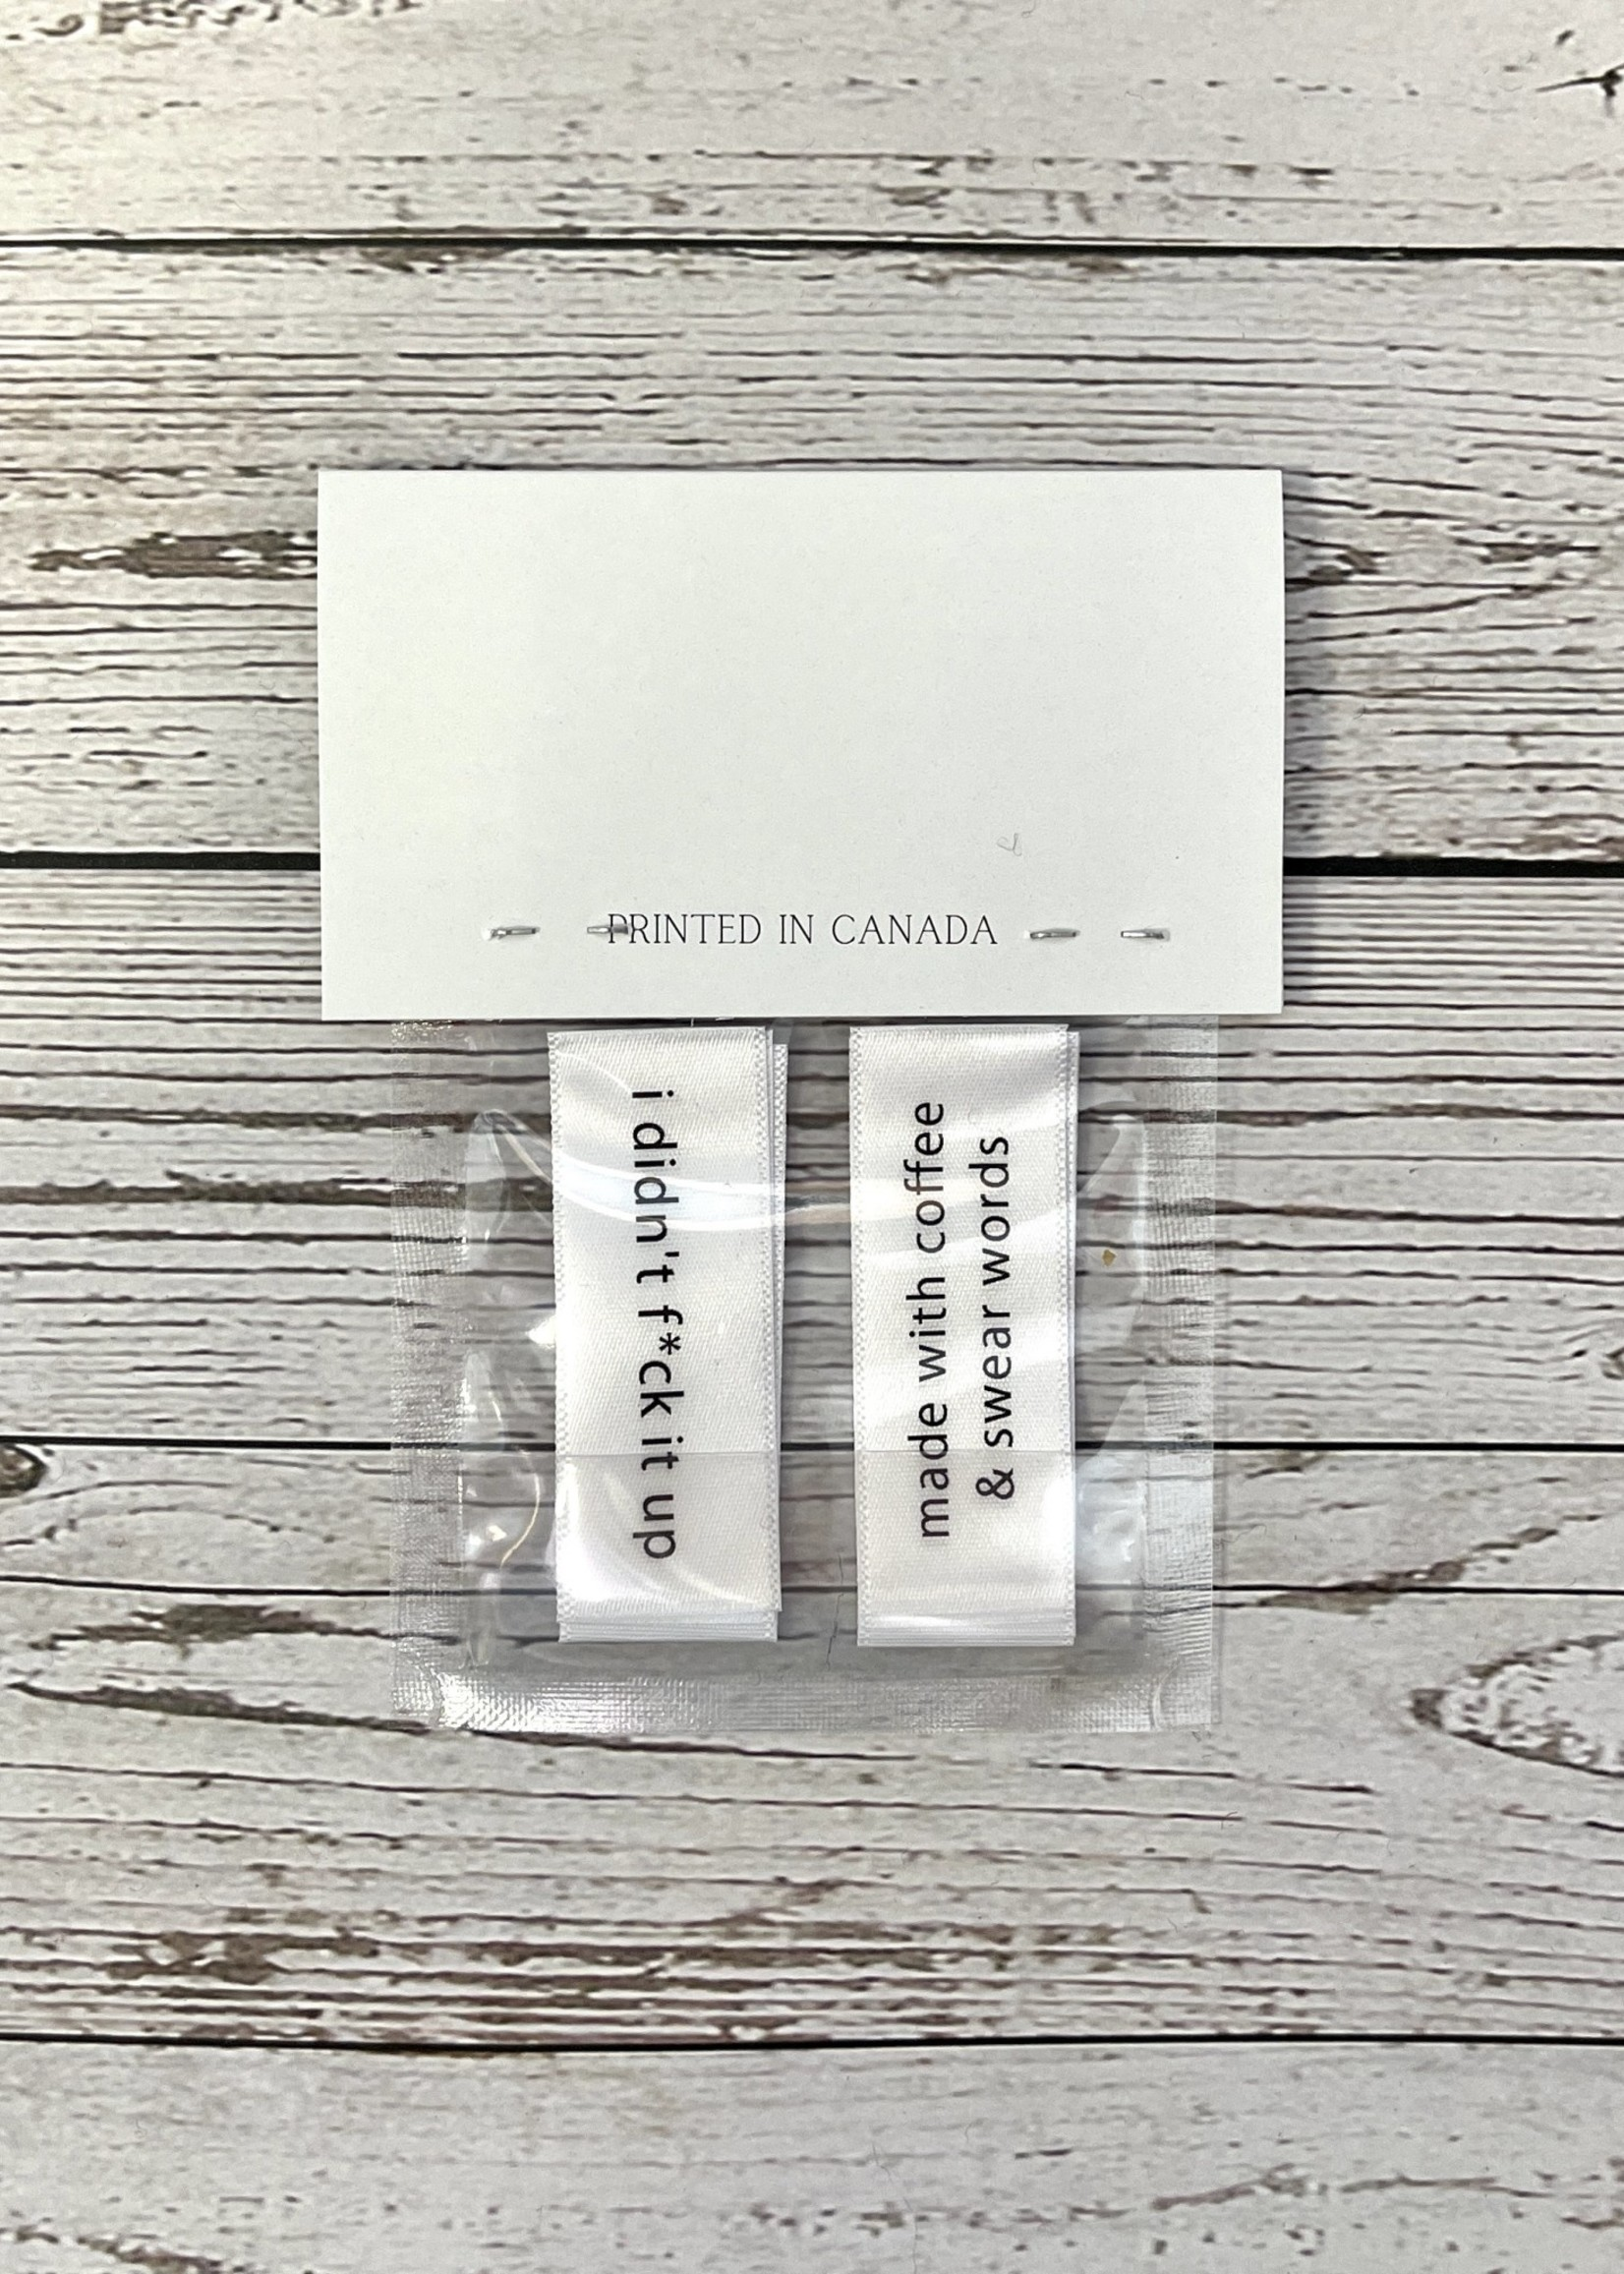 Wonder Twin Fibrearts Handmade Labels for your sh*t